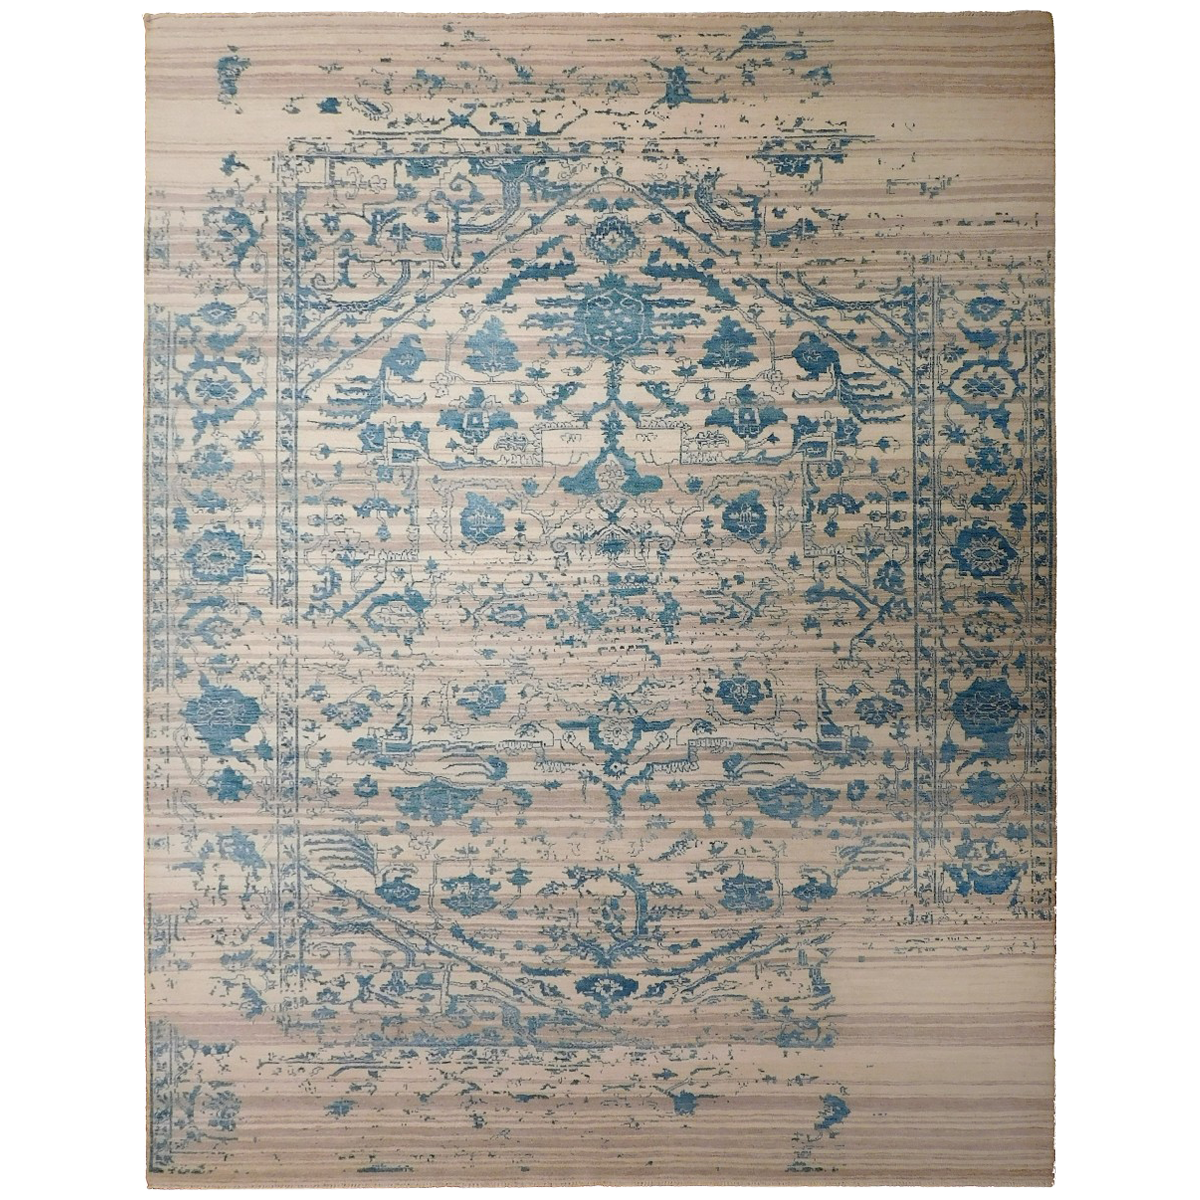 How to clean and maintain silk rugs?